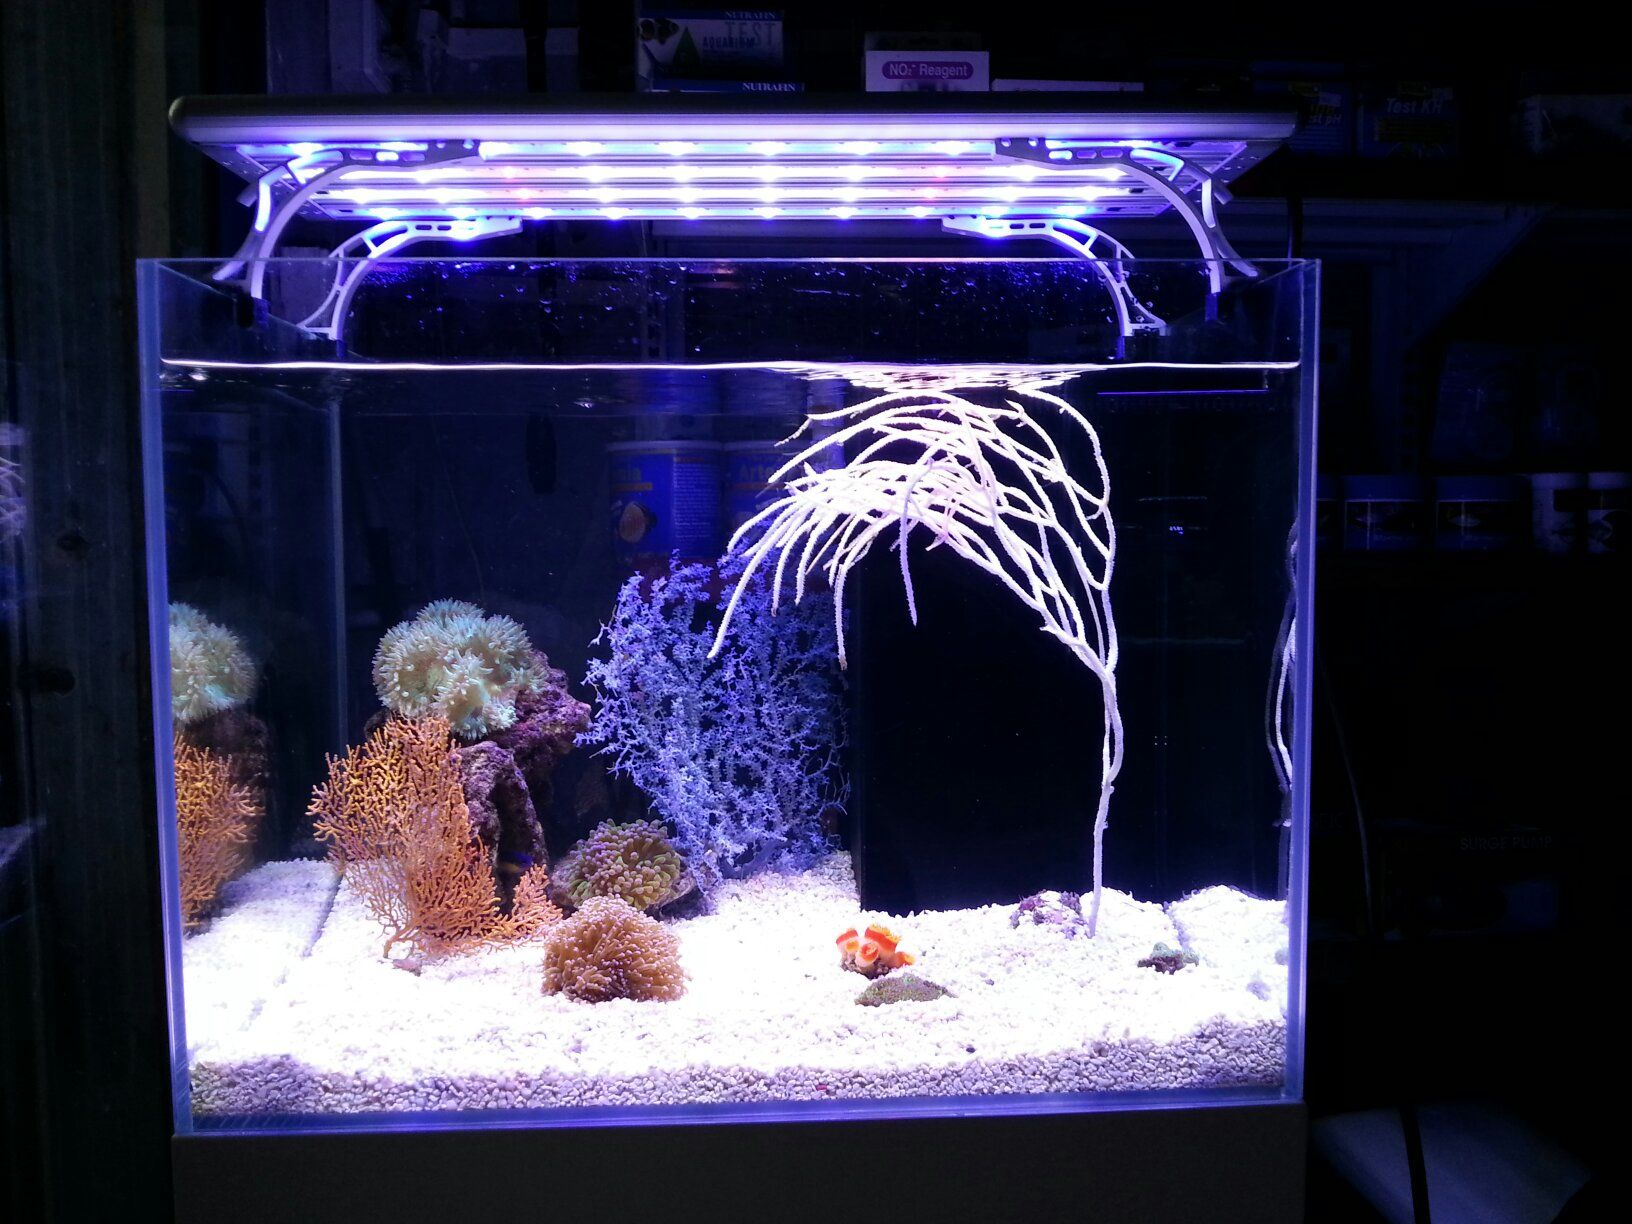 diy quality is dsc impossible lights almost pictures everywhere them for take it me light temporary system picture full aquaponics reflections and indoor aquarium the all excuse to due running of on tank